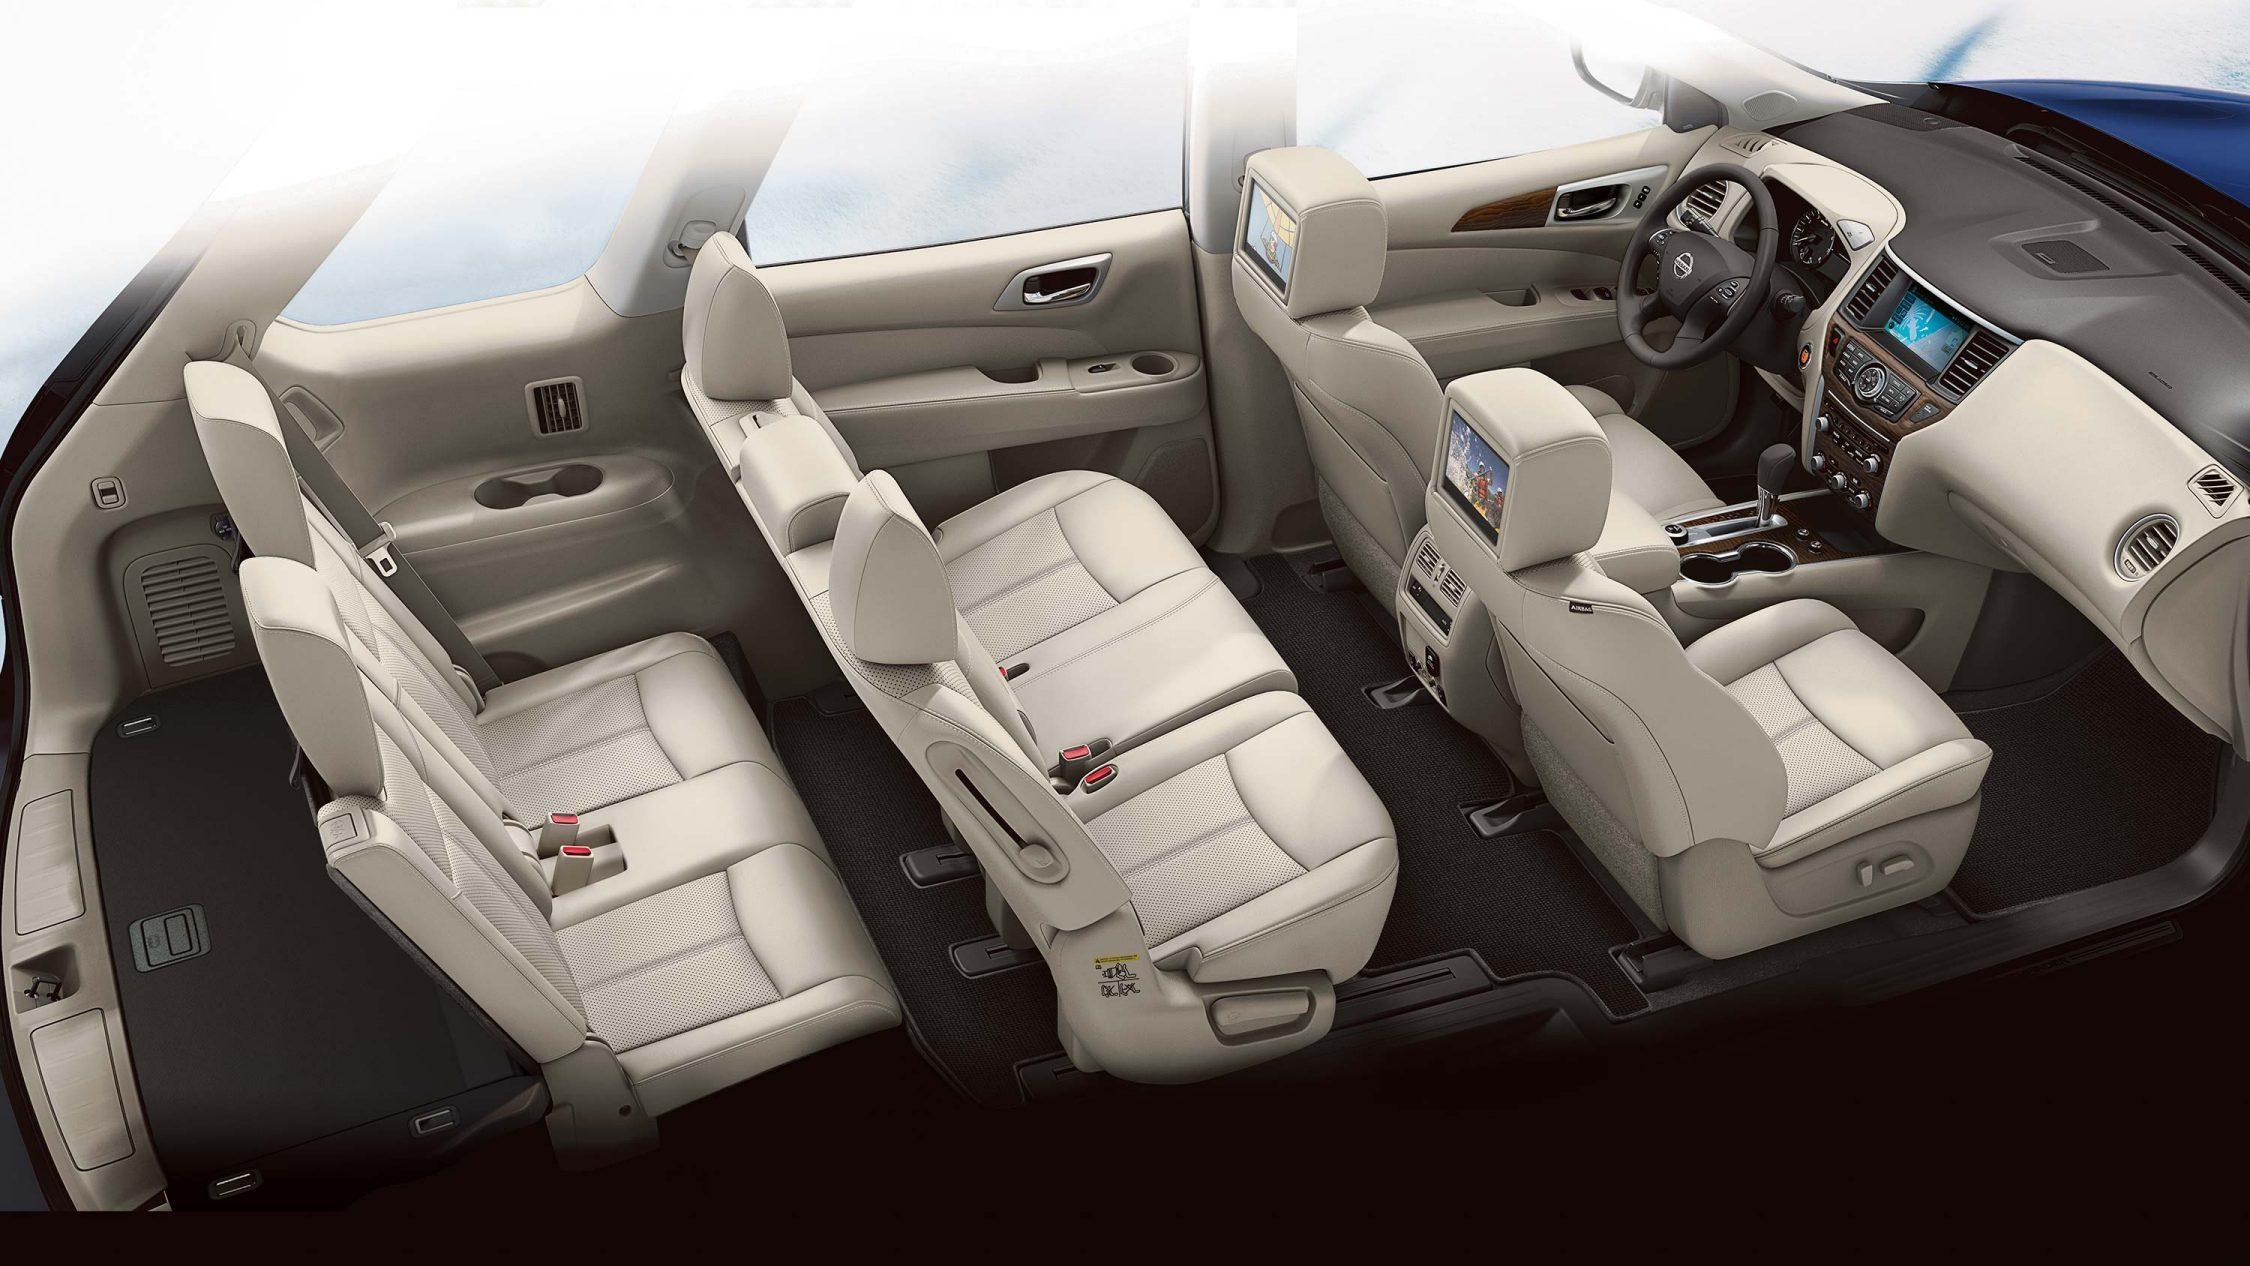 Nissan Pathfinder three rows of seating